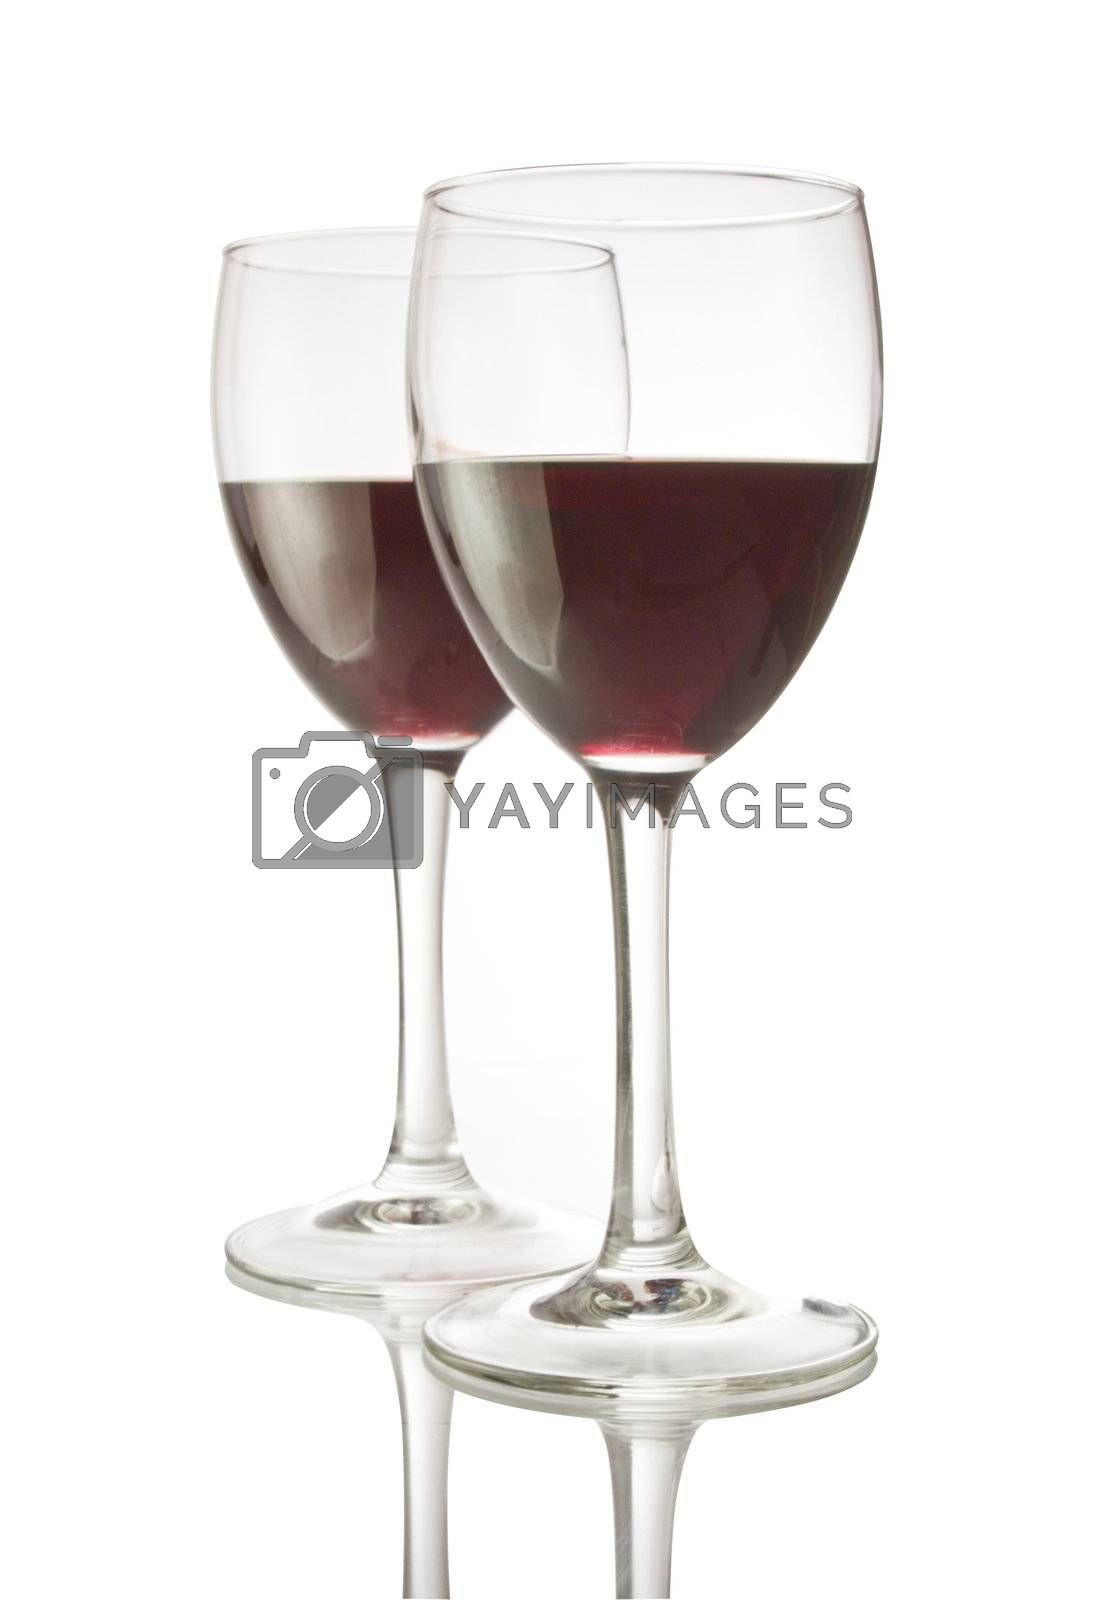 Two wineglasses filled with red wine, isolated on white with clipping path.